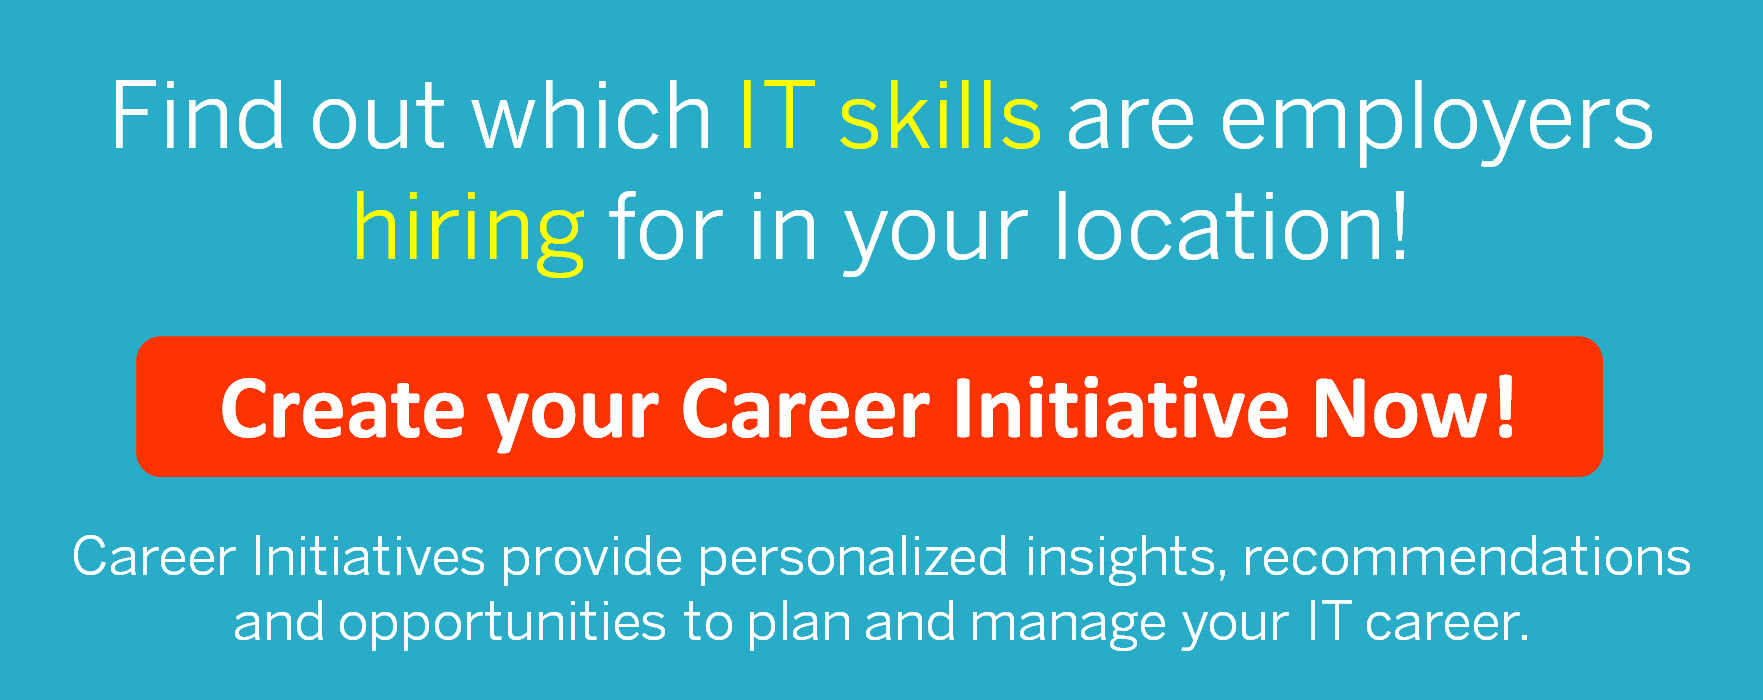 How to ace your IT Interview - Image 2